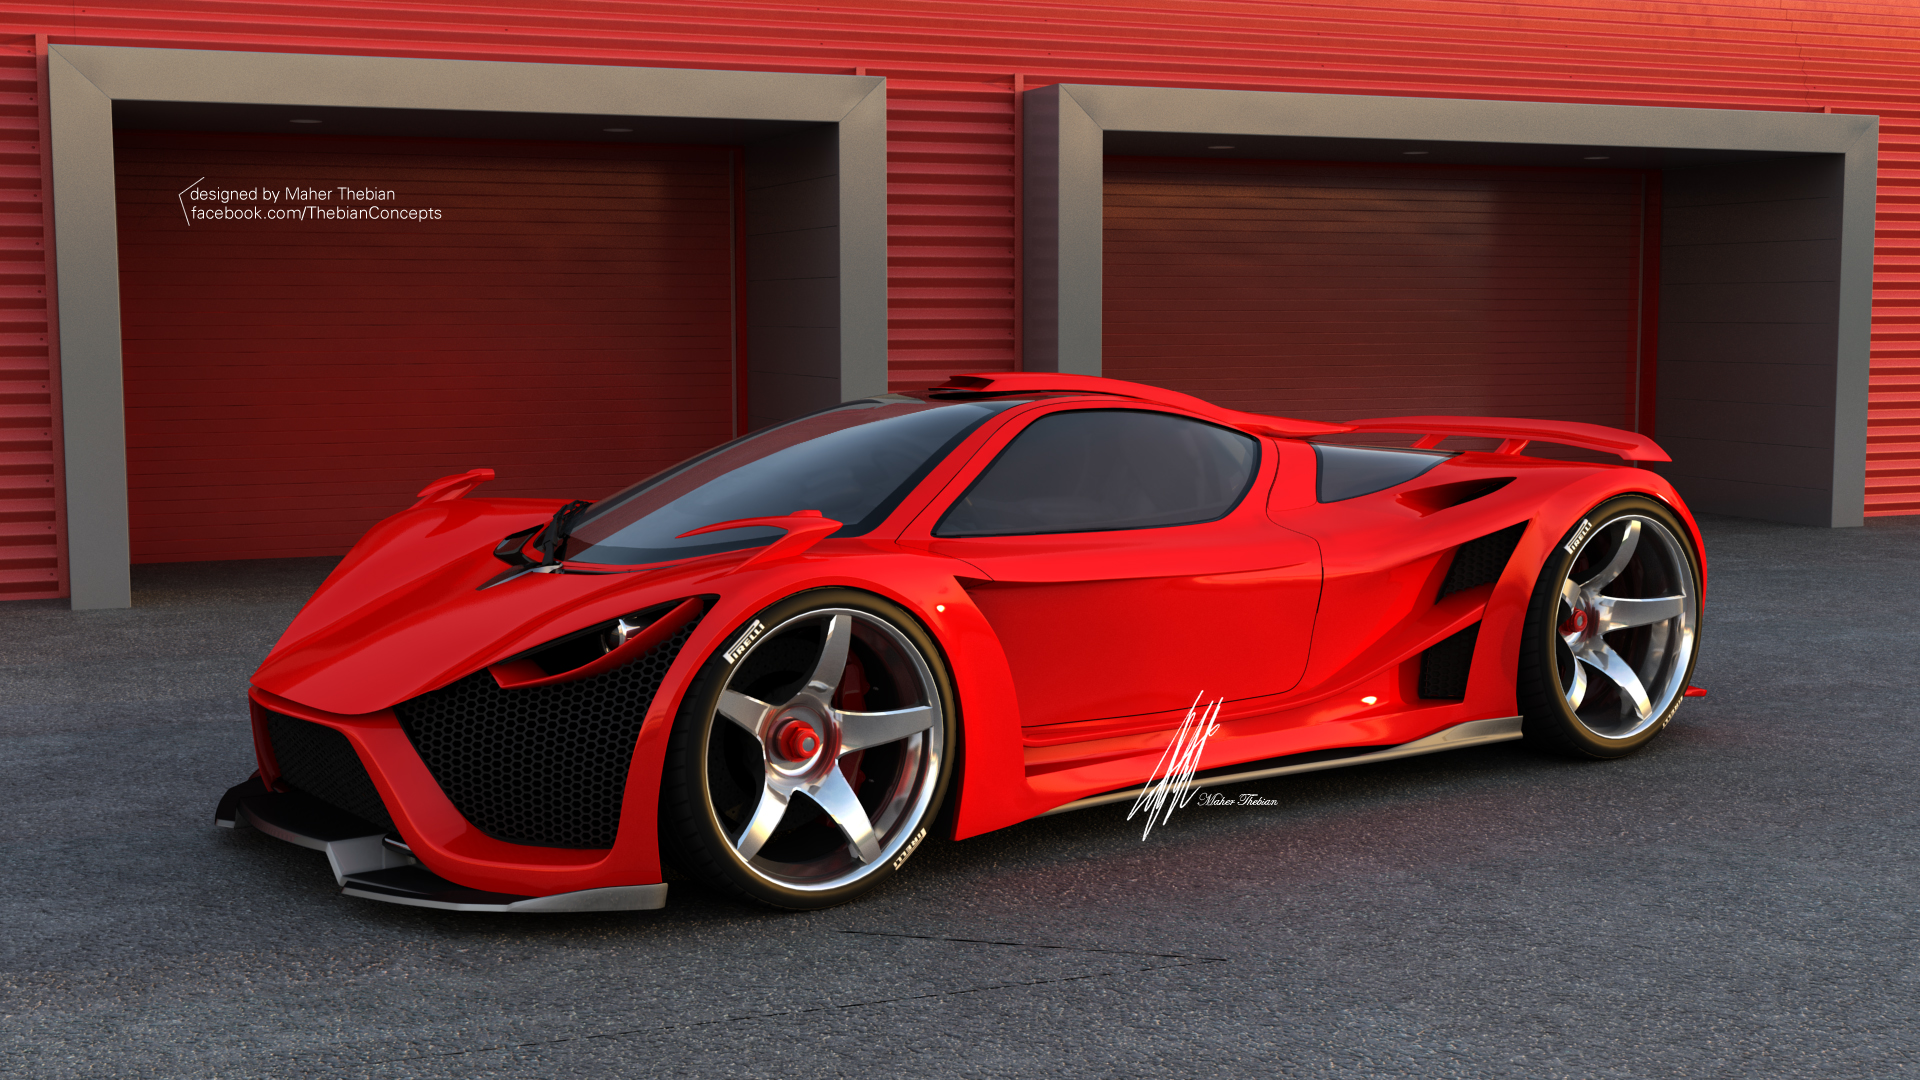 Scorpion Supercar By Maher Thebian At Coroflot Com